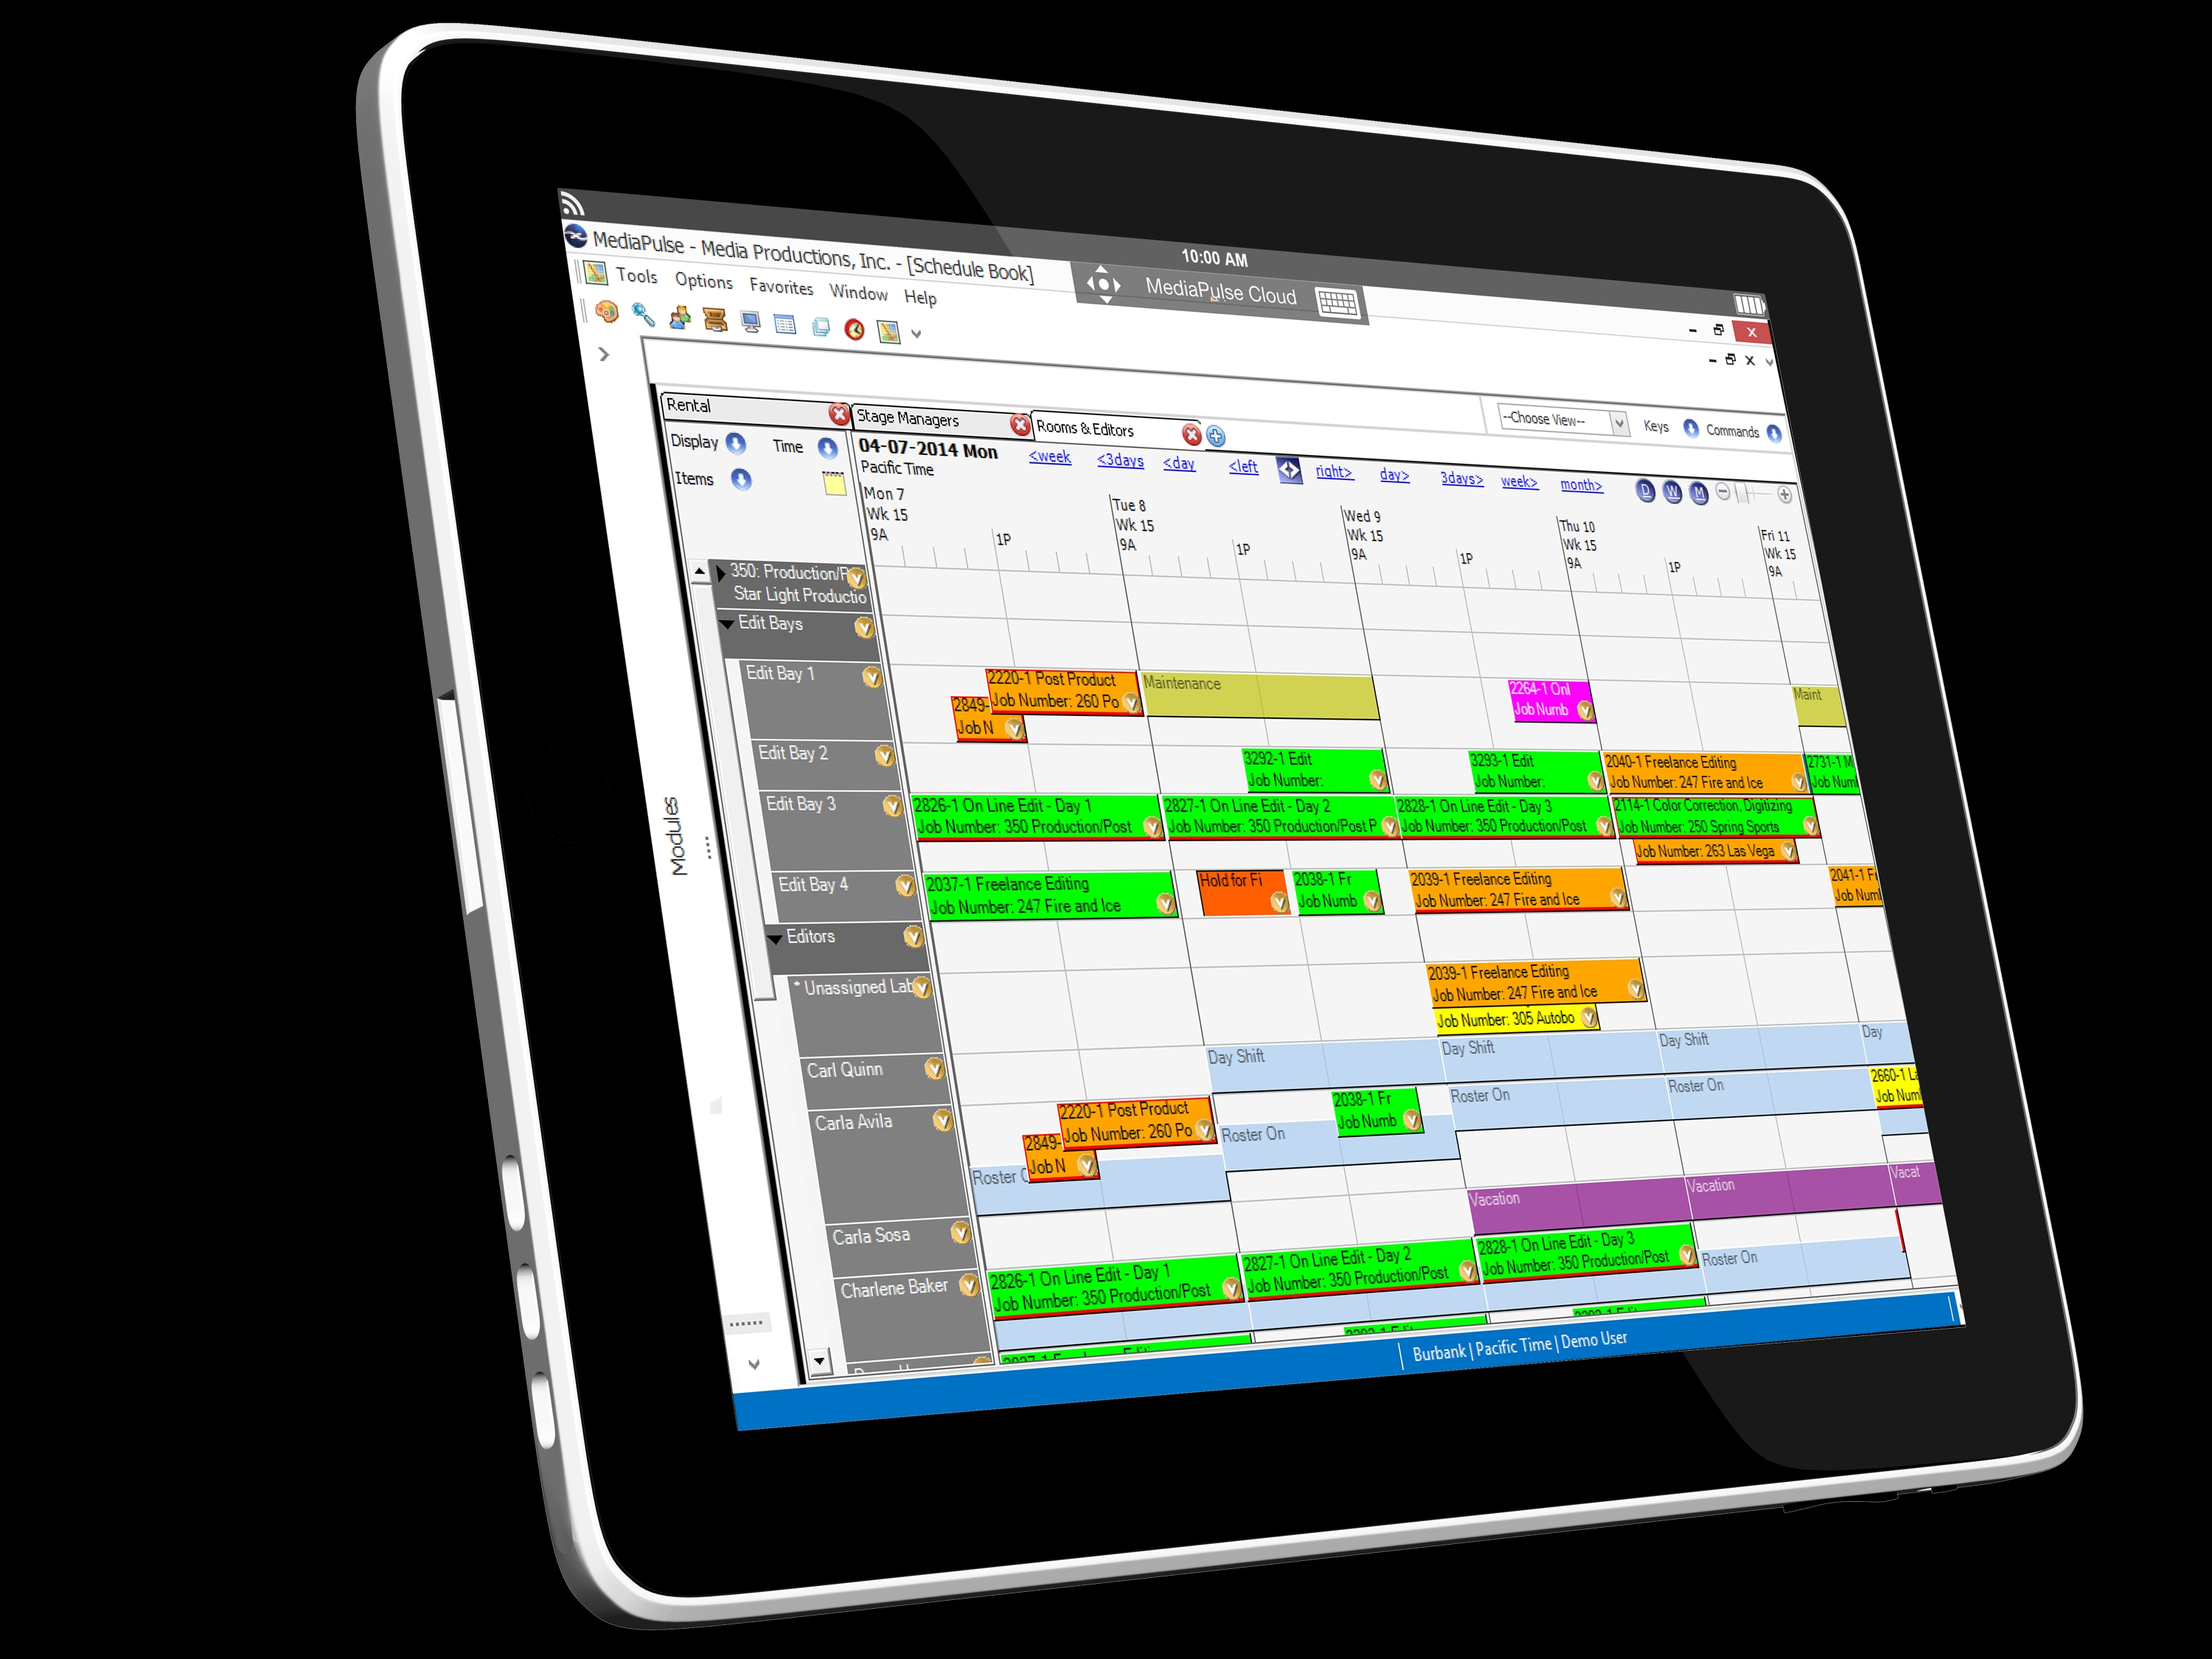 Xytech Launches MediaPulse Cloud at IBC 2014 4